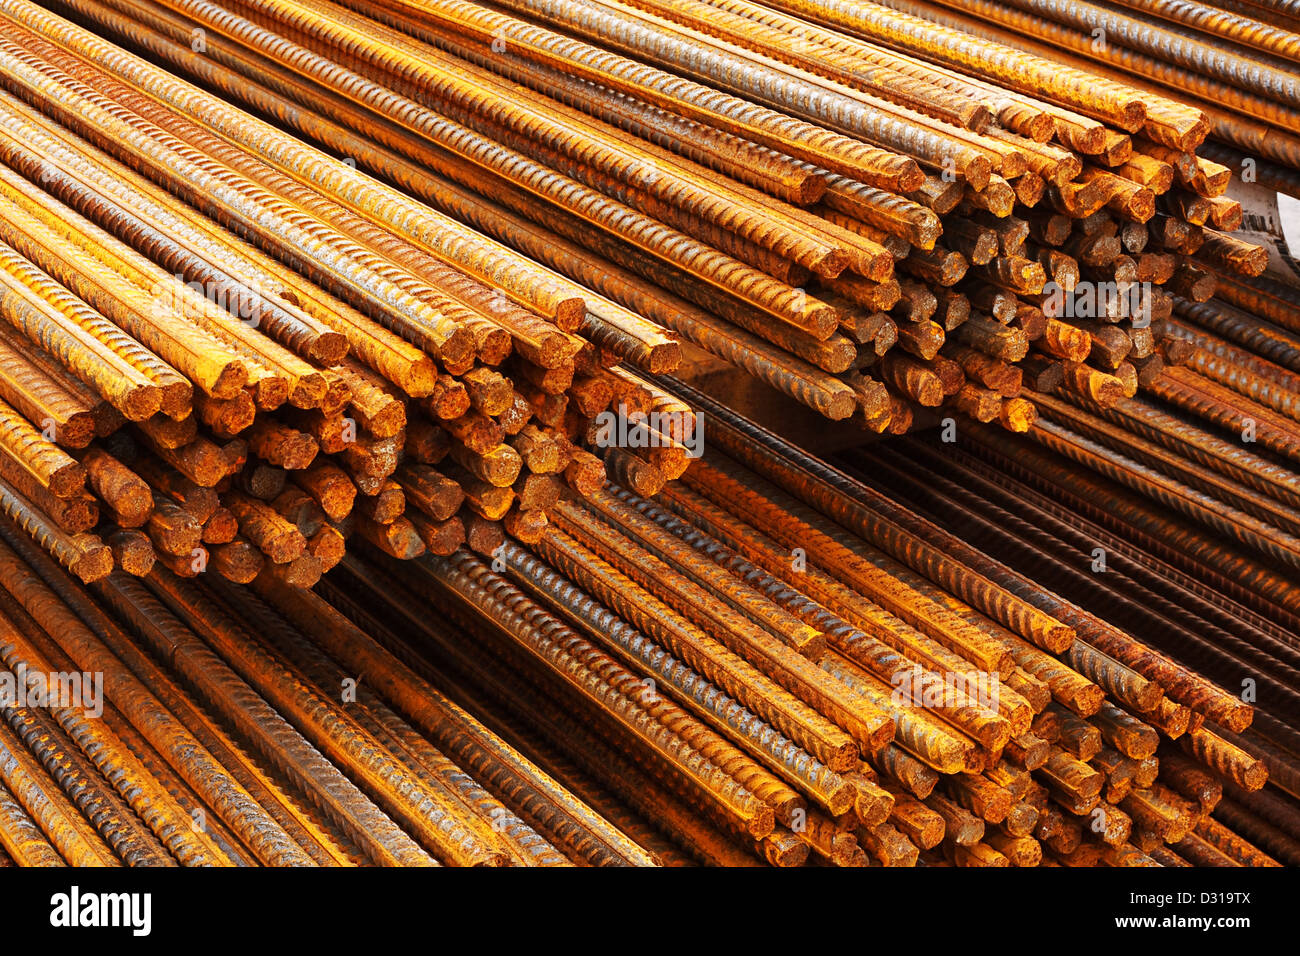 reinforcing steel bars for the construction industry to make reinforced concrete - Stock Image